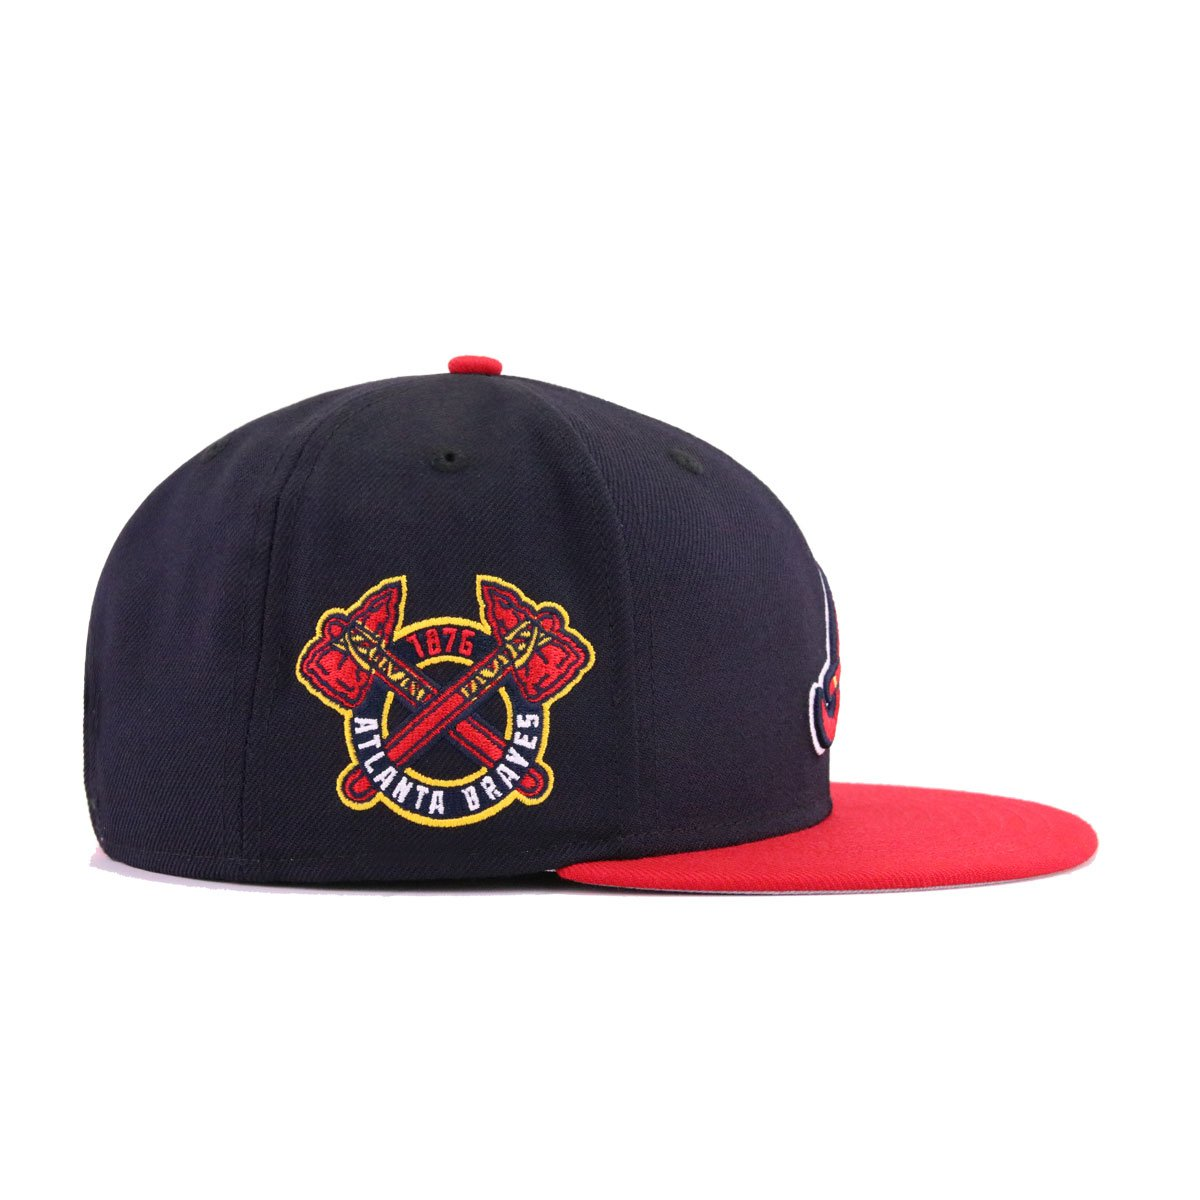 cb2900e3ad4 Atlanta Braves Navy Scarlet Tomahawk 1876 New Era 9Fifty Snapback